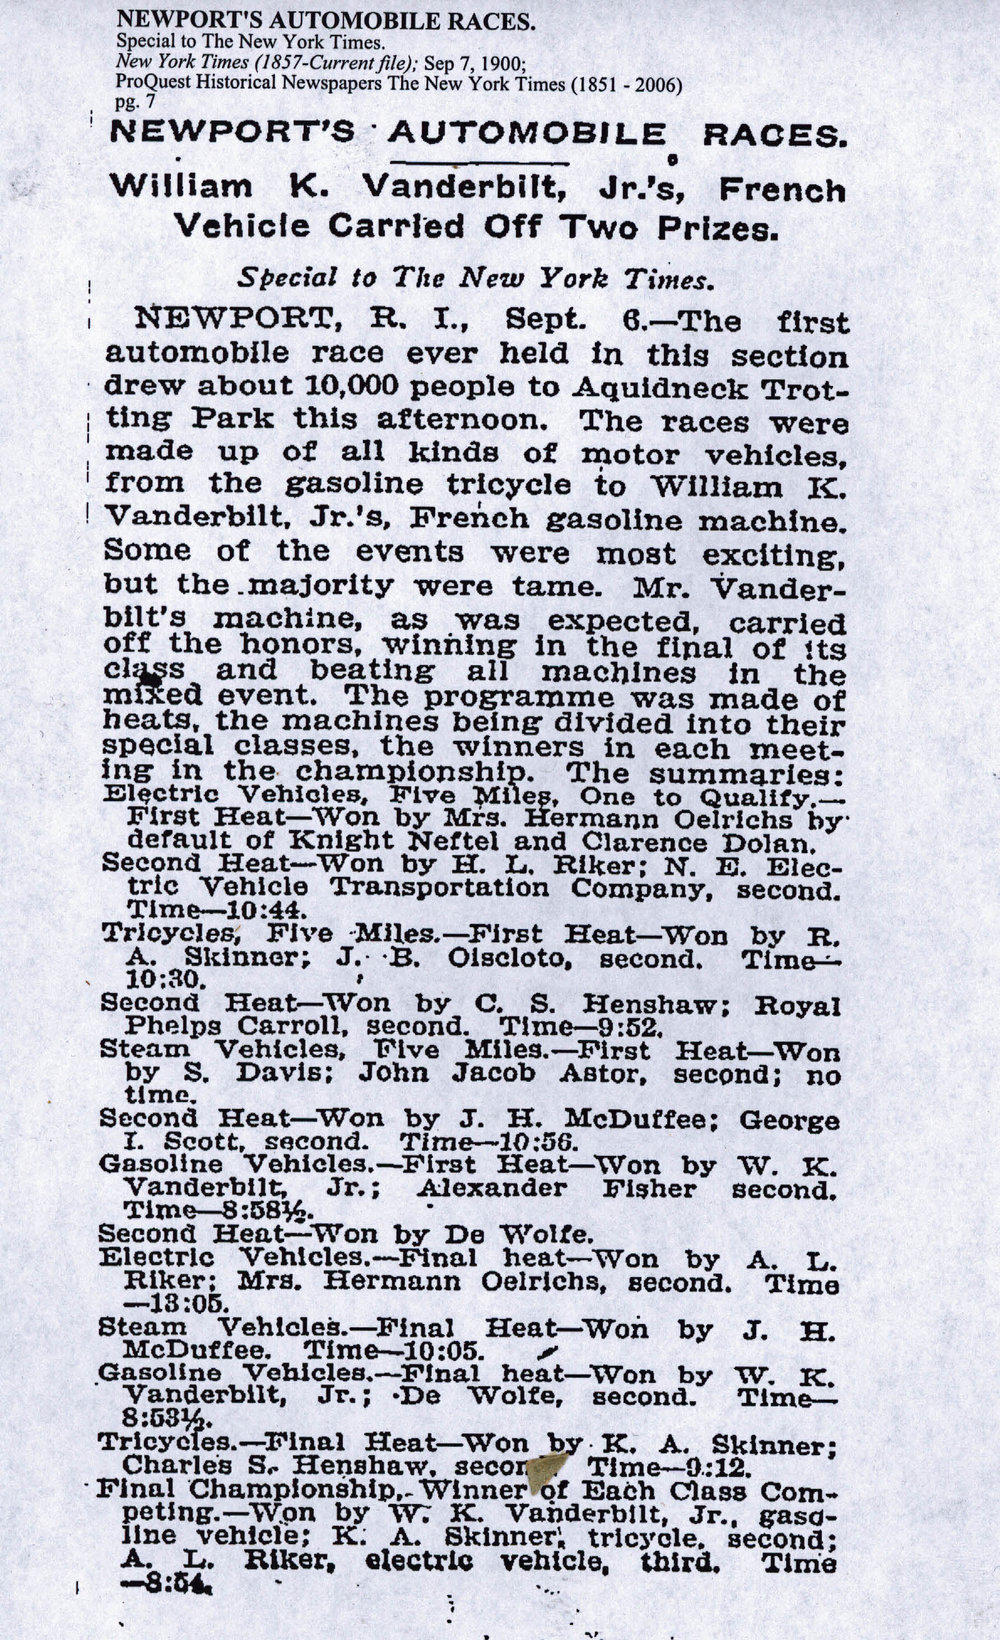 """""""The first automobile race ever held in this section drew about 10,000 people to Aquidneck Trotting Park this afternoon. The races were made up of all kinds of motor vehicles, from the gasoline tricycle to William K. Vanderbilt, Jr.'s French gasoline machine. Some of the events were most exciting , but the majority were tame. Mr. Vanderbilt's machine, as was expected, carried off the honors, winning in the final of its class and beating all machines in the mixed event. The programme was made of heats, the machines being divided into their special classes, the winners in each meeting in the championship. """"    The New York Times  September 7, 1900 ,  clipping via vanderbiltcupraces.com"""